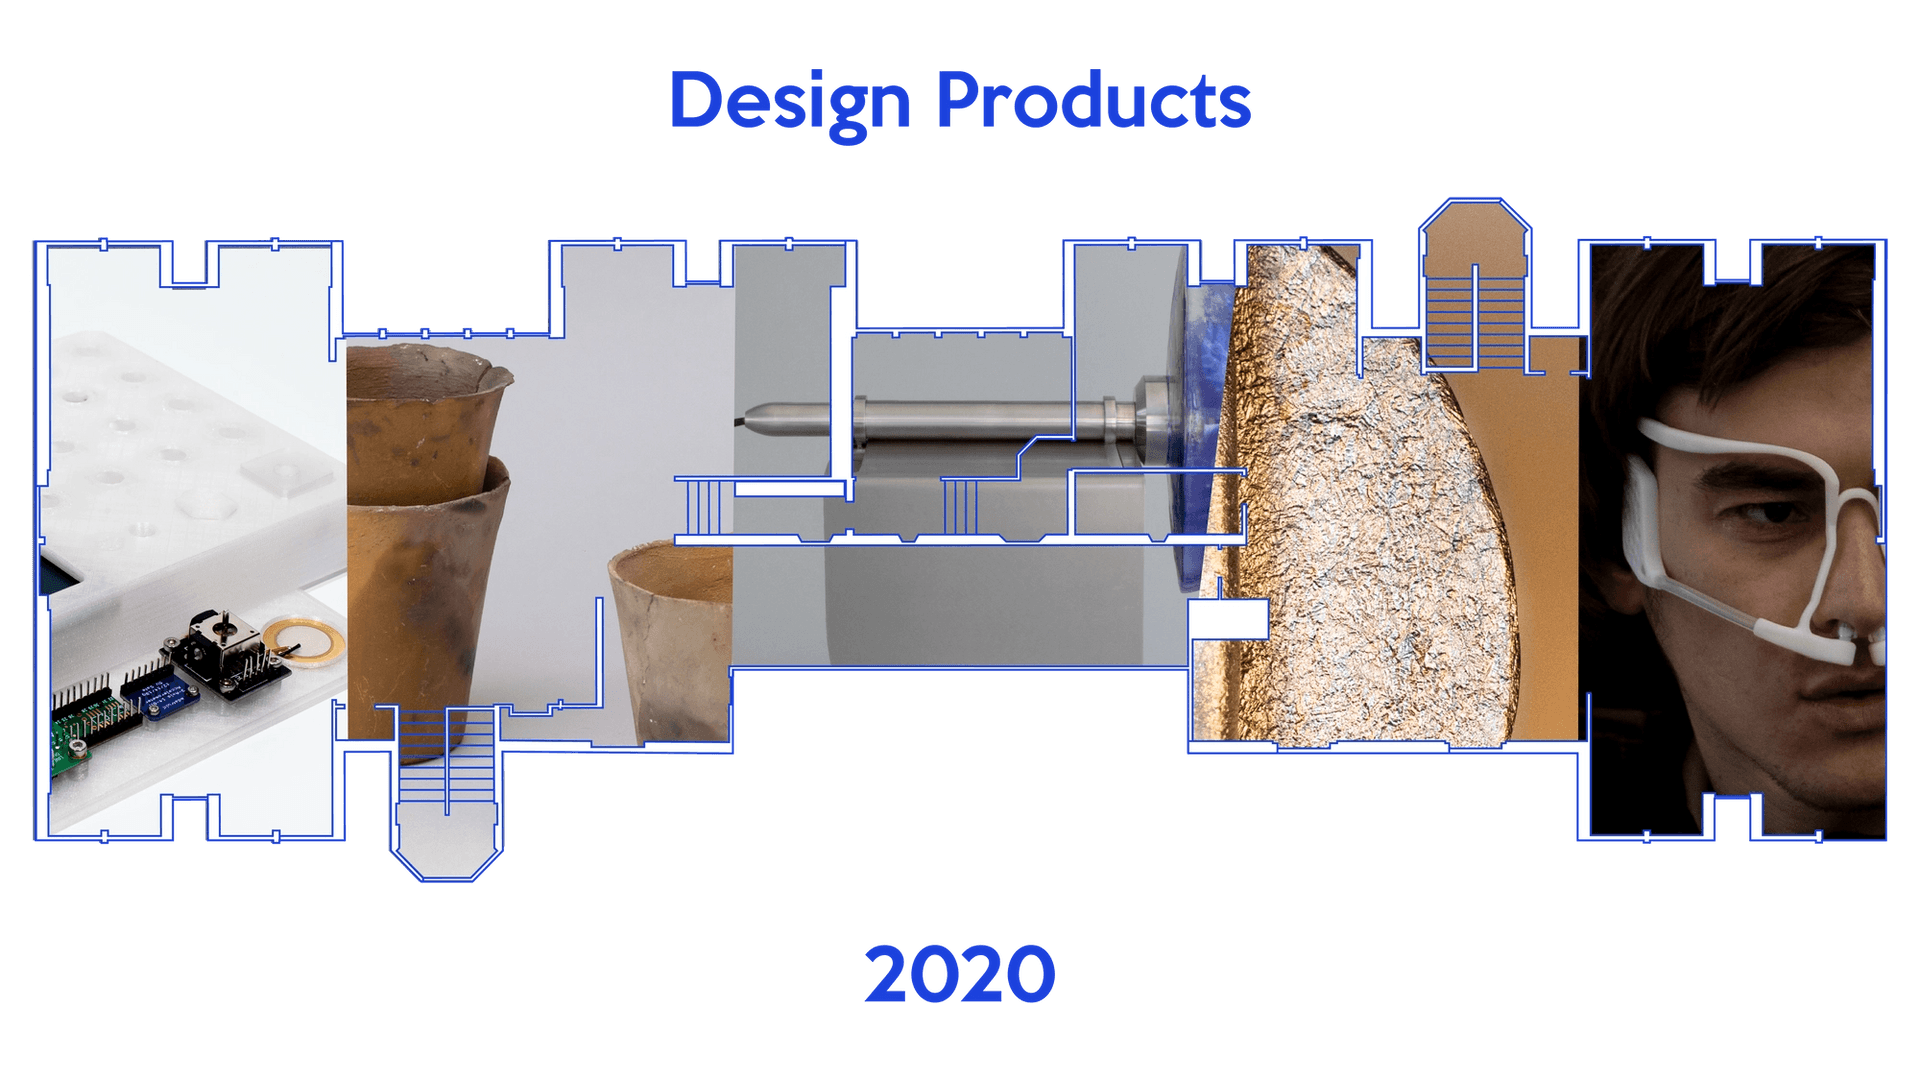 Design Products 2020